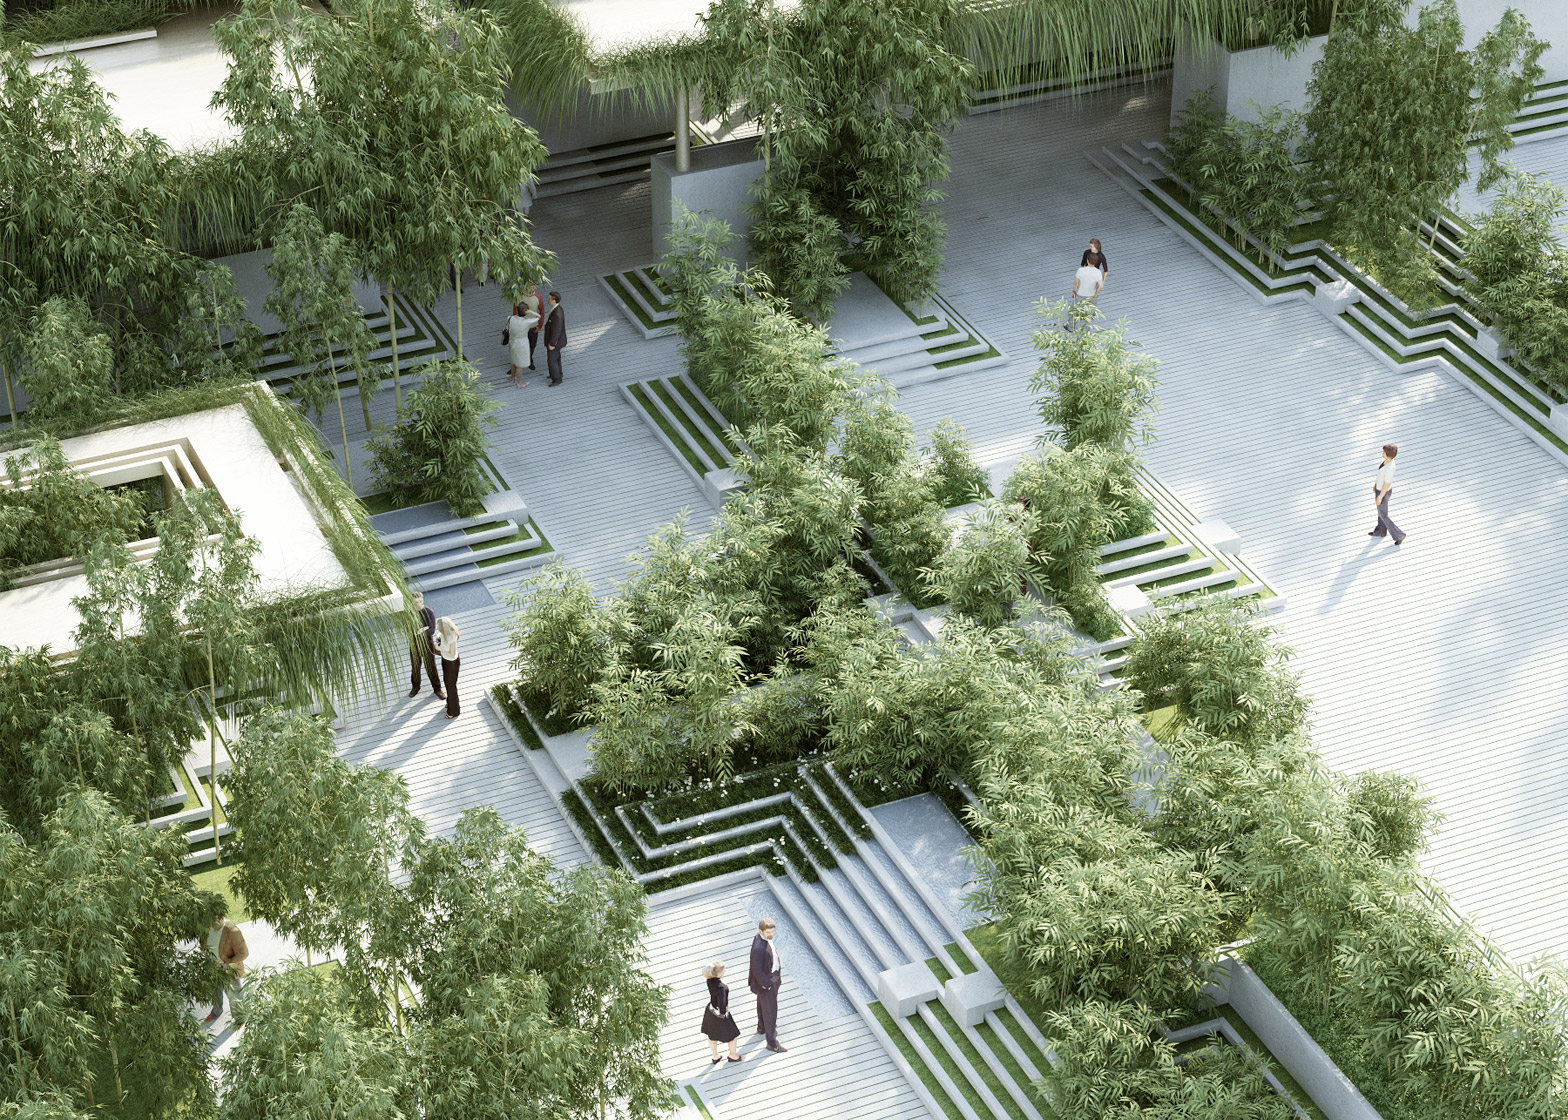 Penda combines stepwells with water mazes for garden design